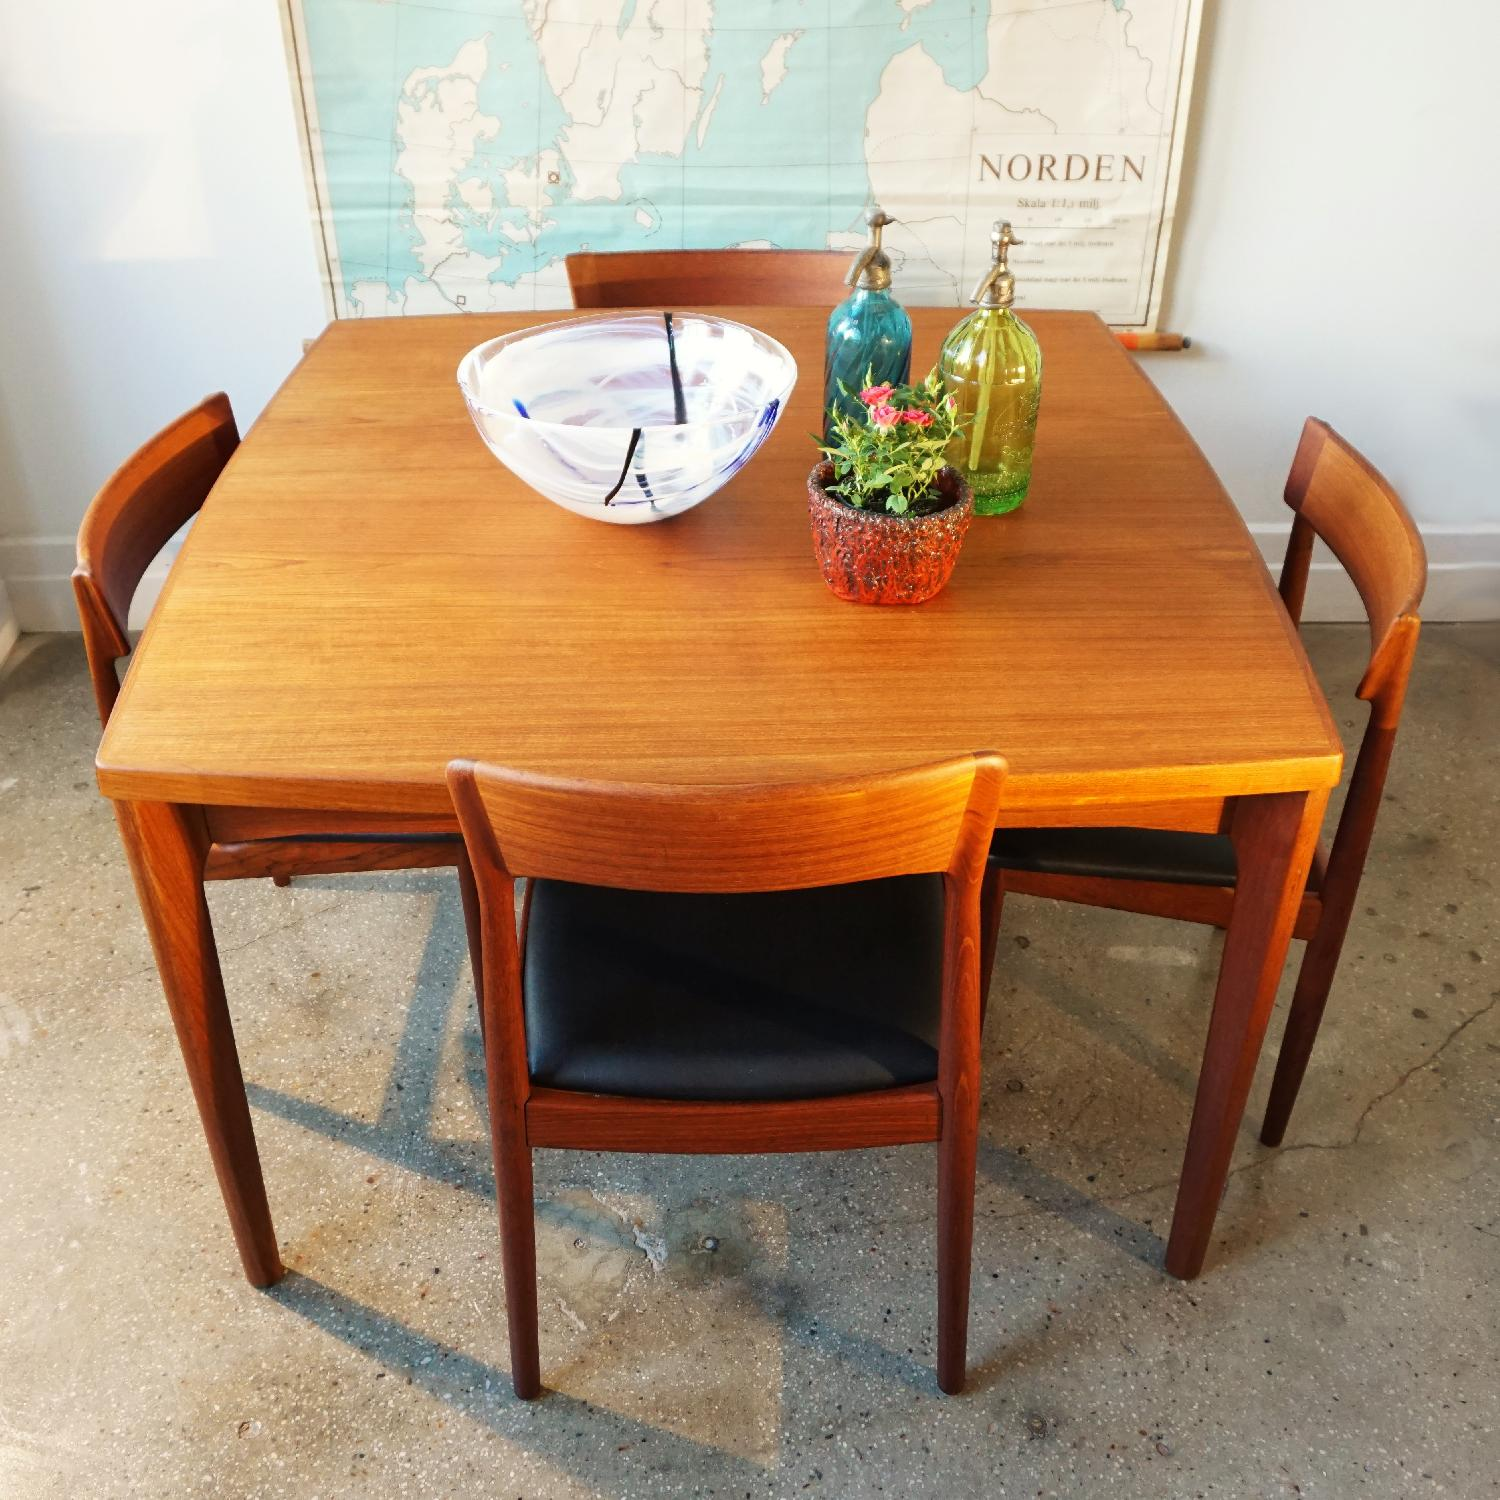 Henning Kjrnulf Extendable Dining Table - image-5